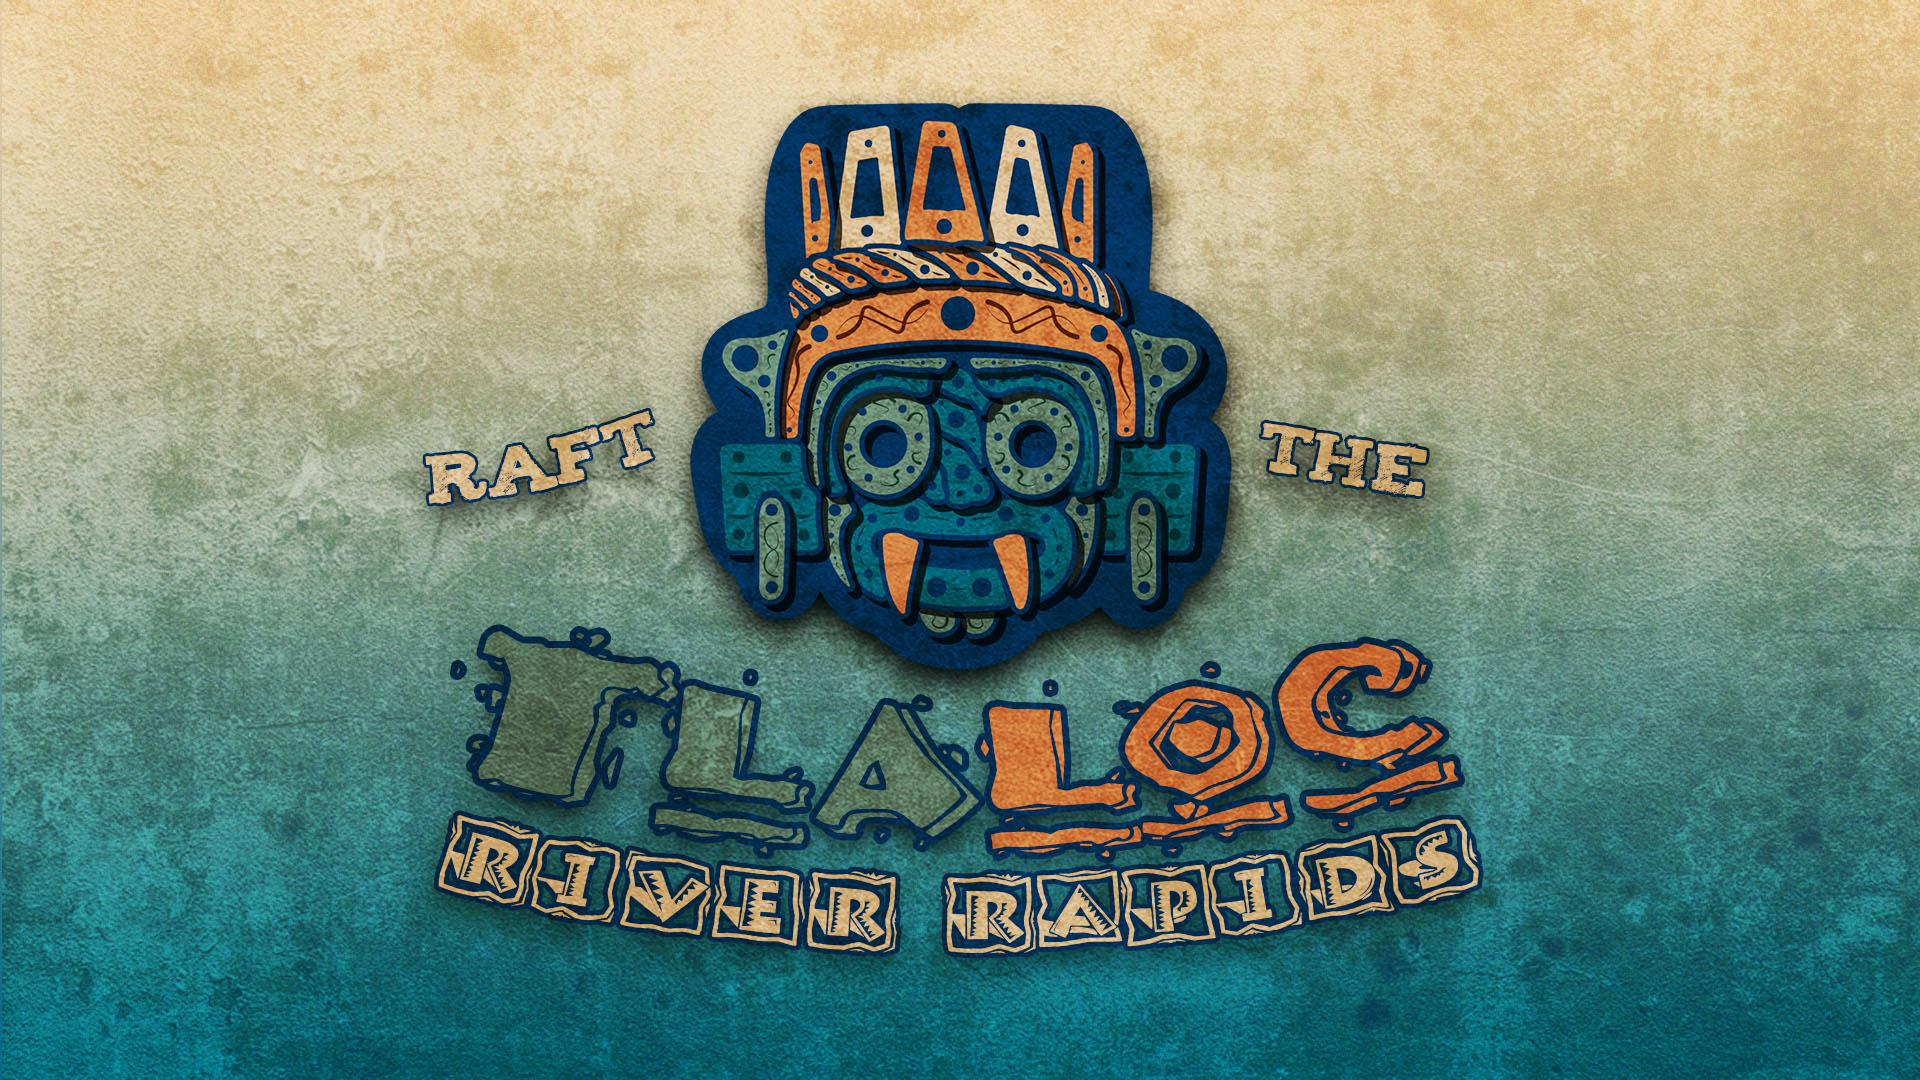 Tlaloc River Rapids